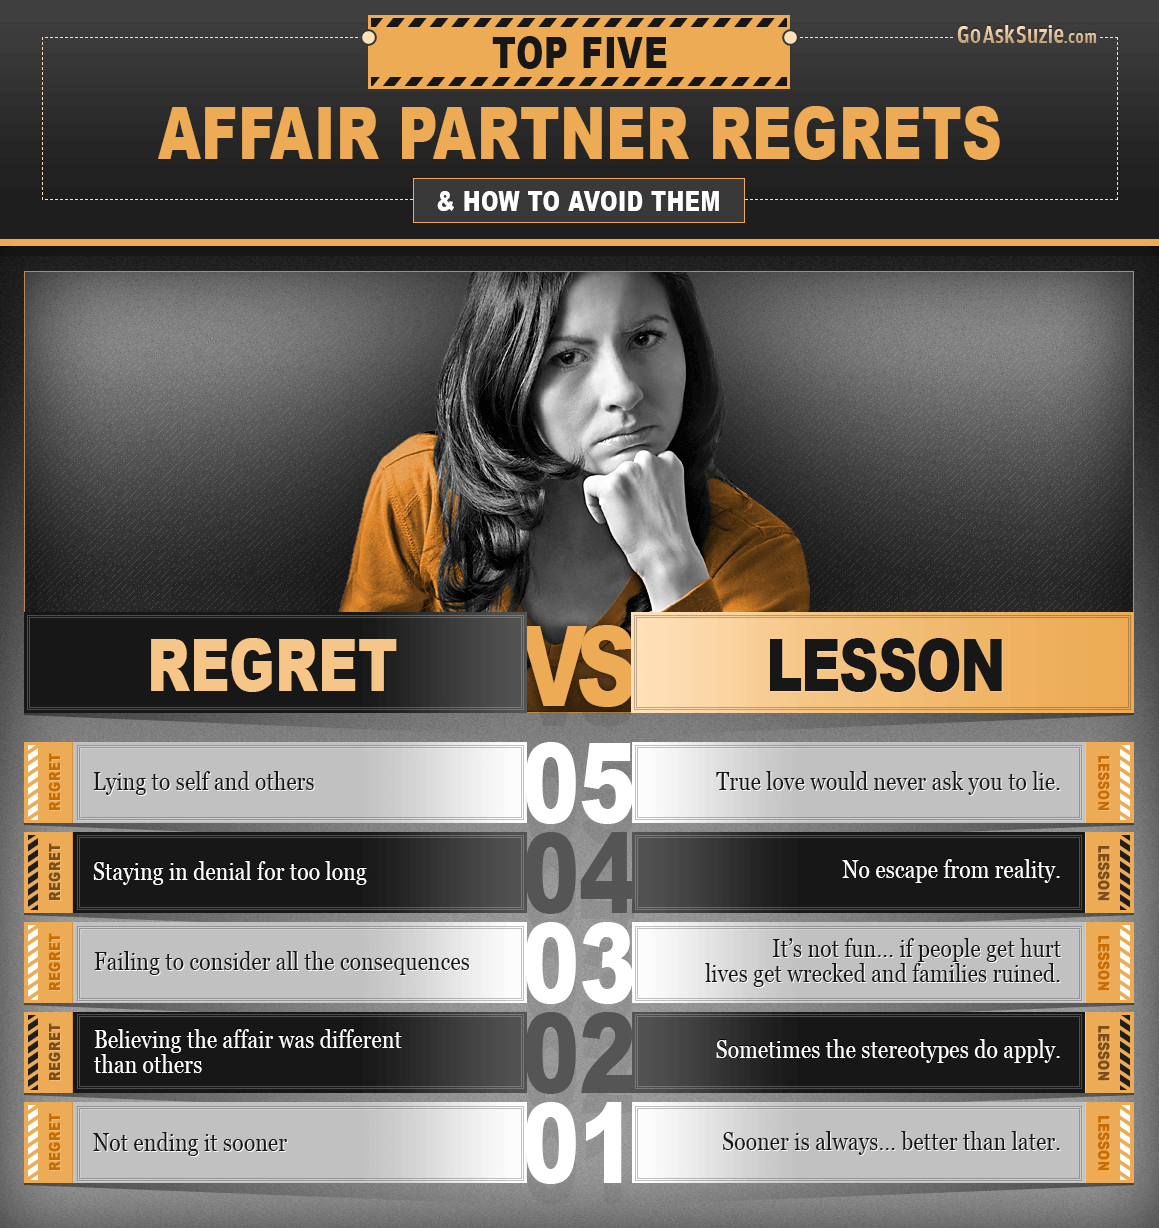 Affair Partner Regrets